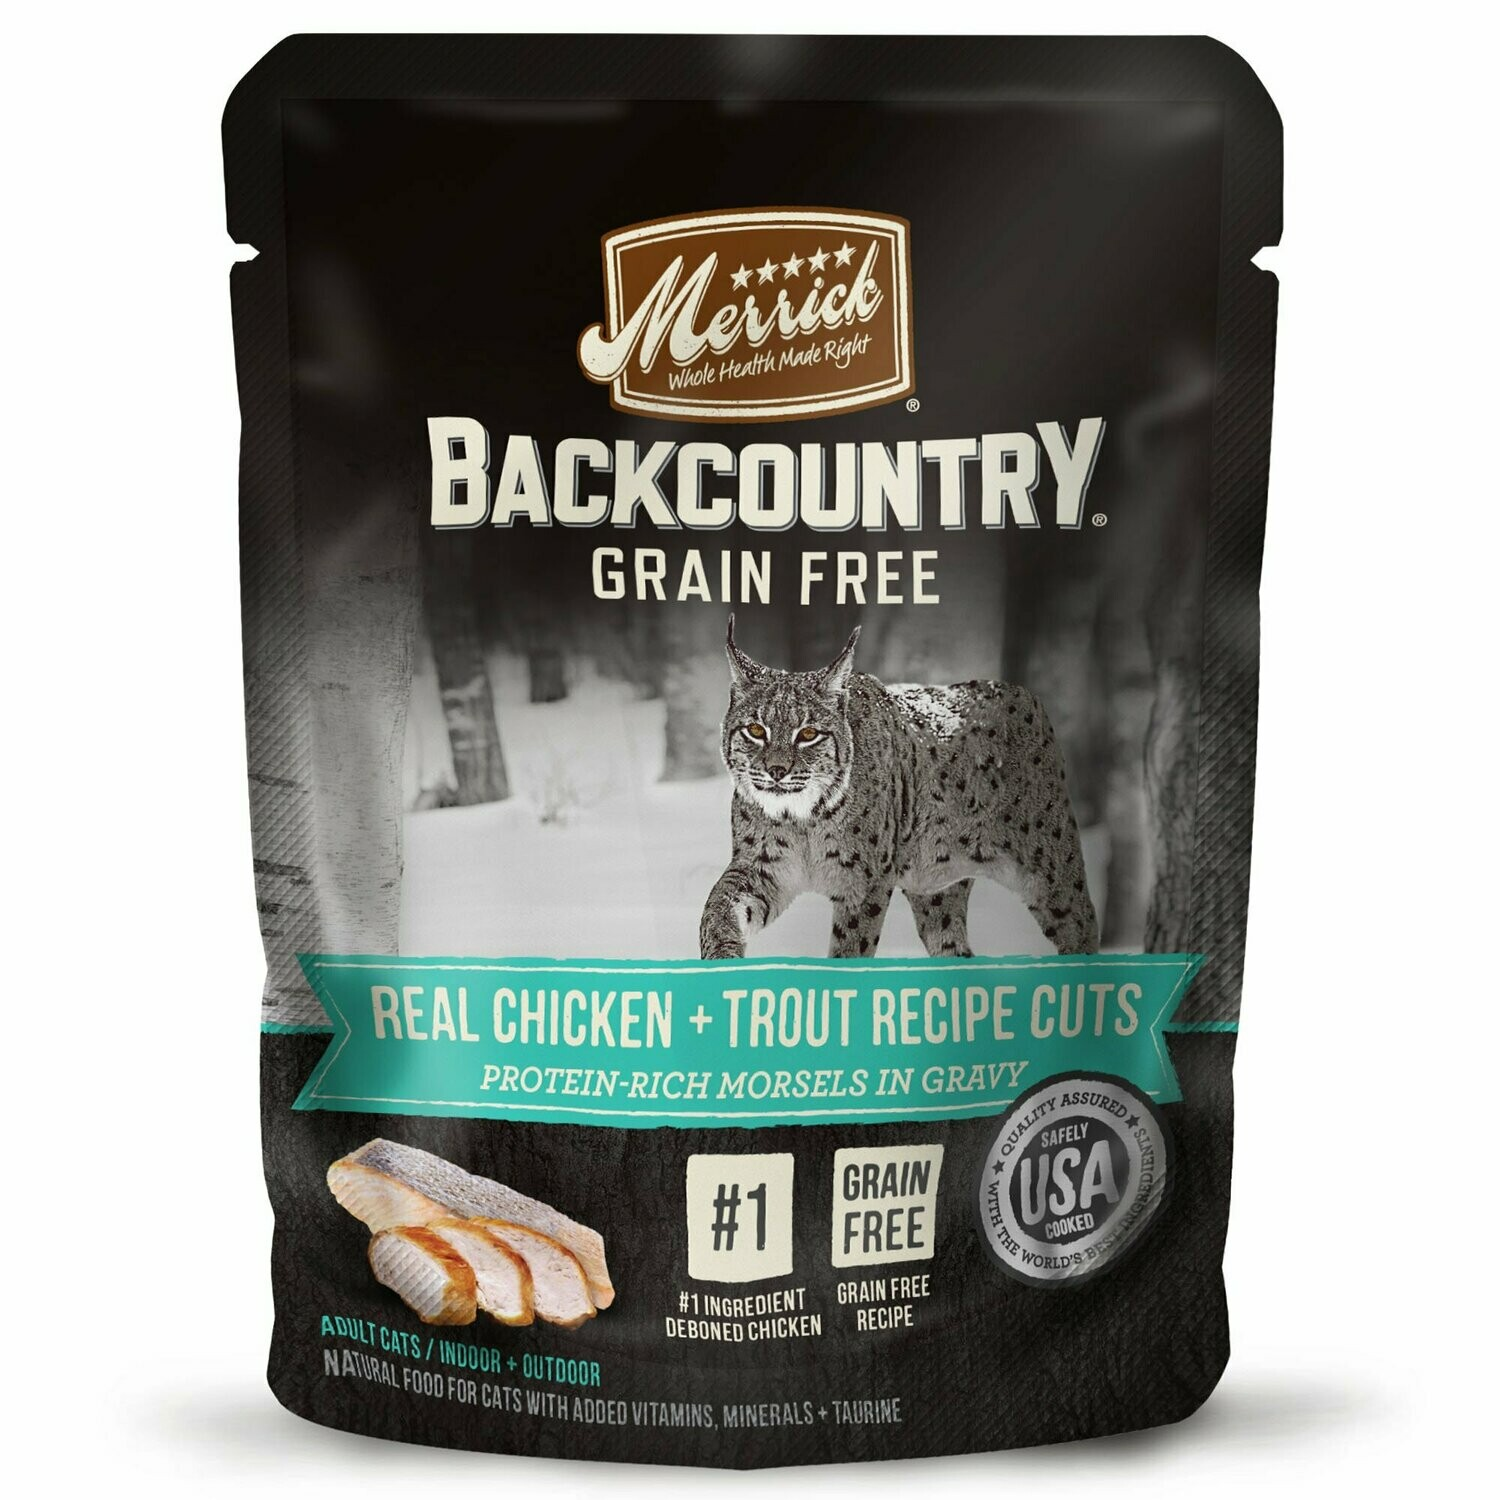 Merrick Backcountry Grain-Free Real Chicken & Trout Recipe Cuts Wet Cat Food 3 oz 24 count (02/19) (A.R1)